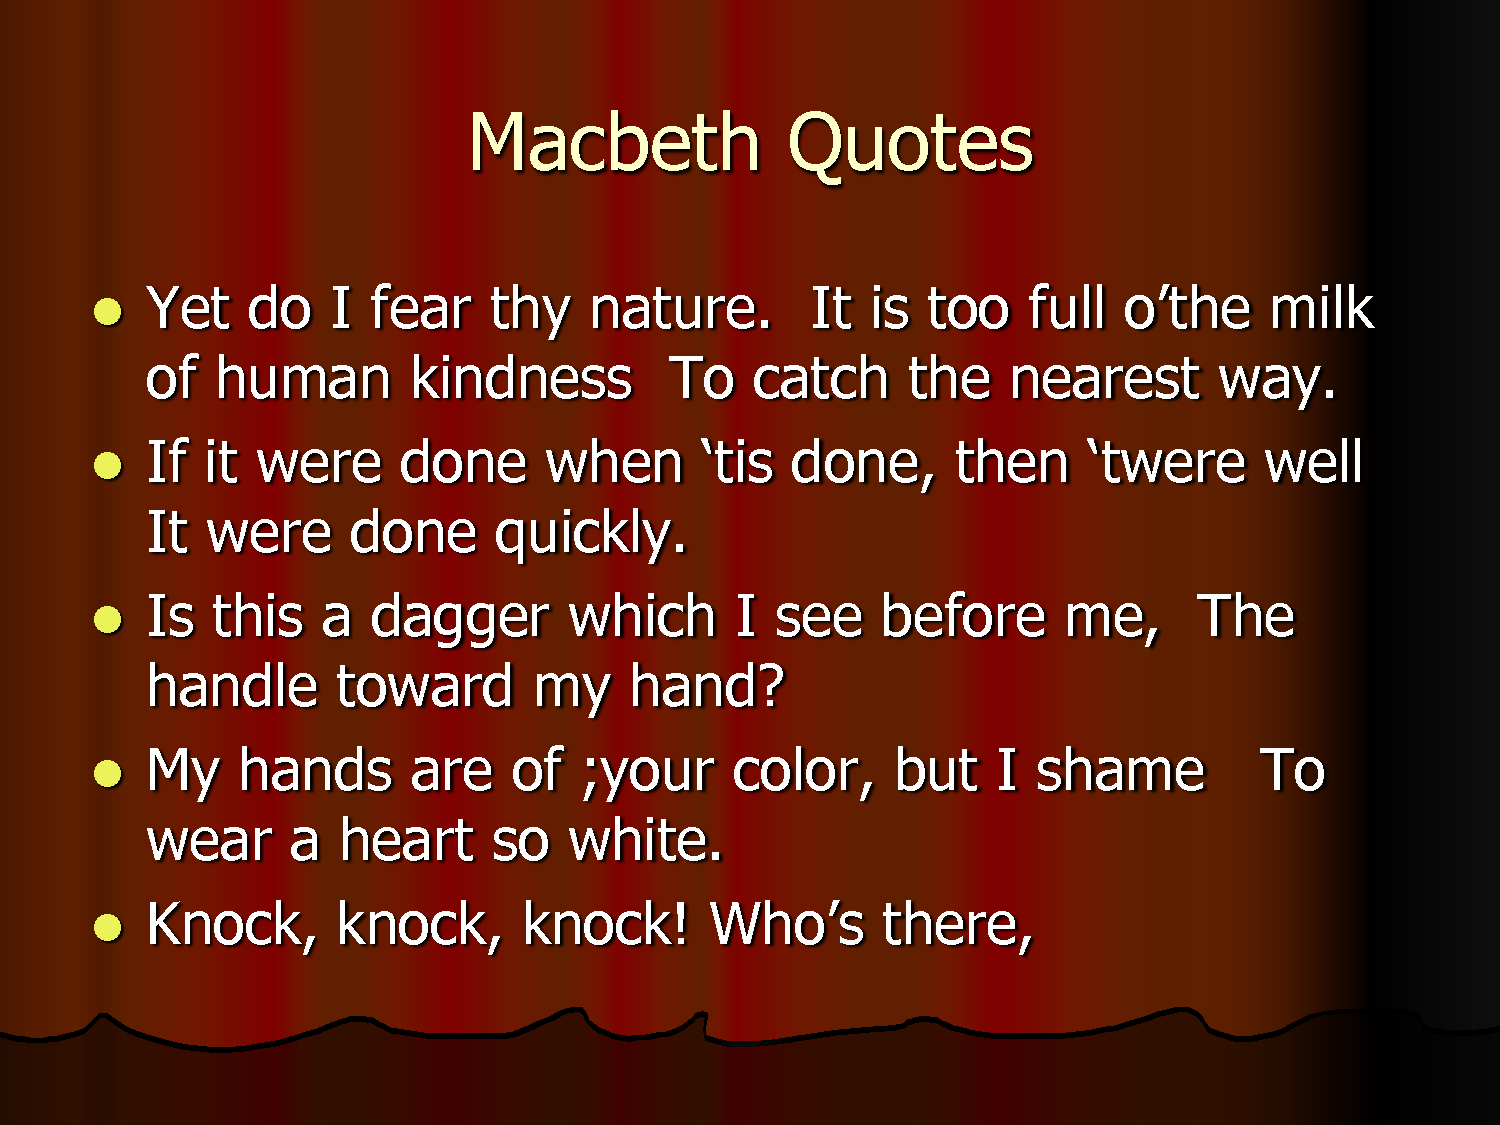 Lady Macbeth Ambition Quotes